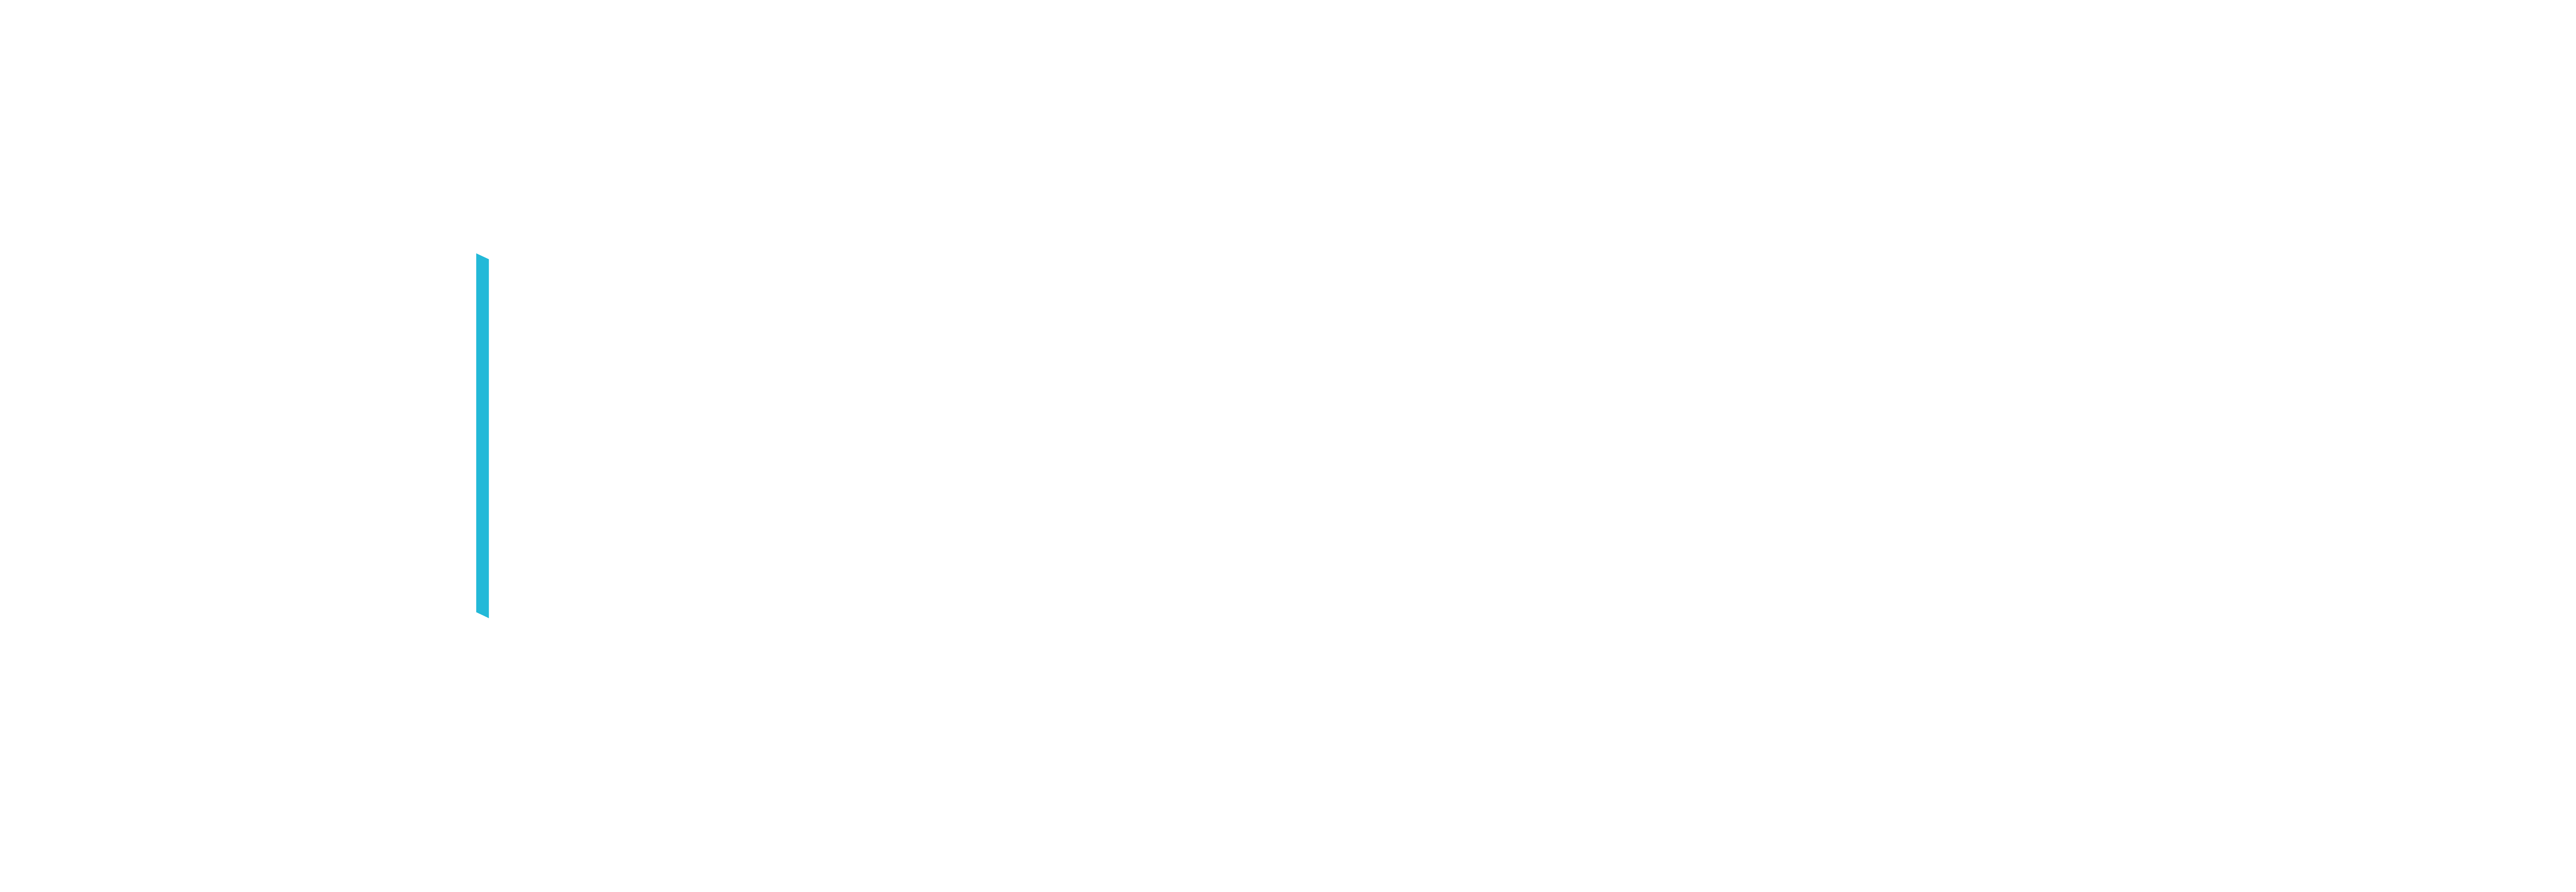 Scientific Research Projects Office